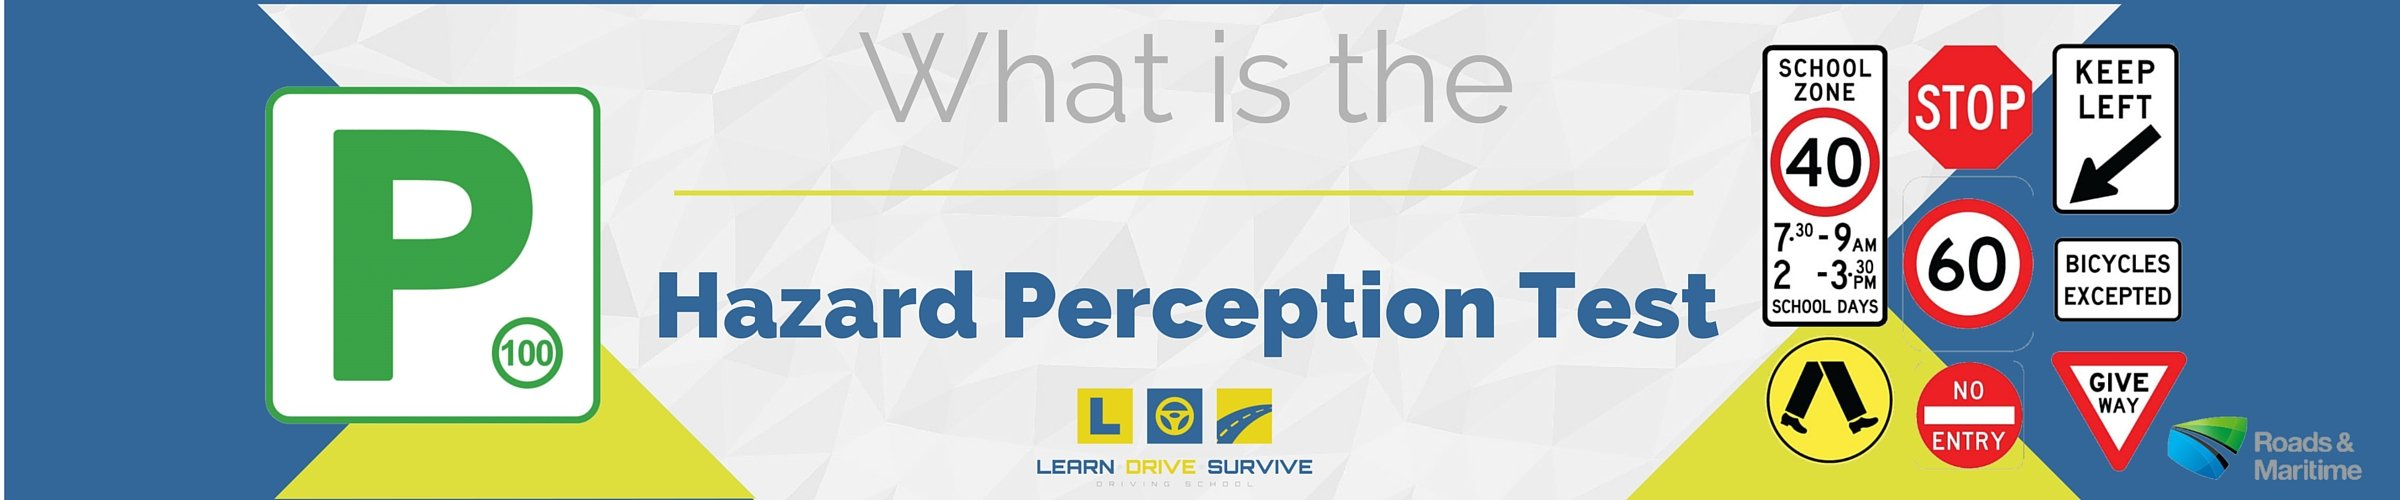 What is the Hazard Perception Test?